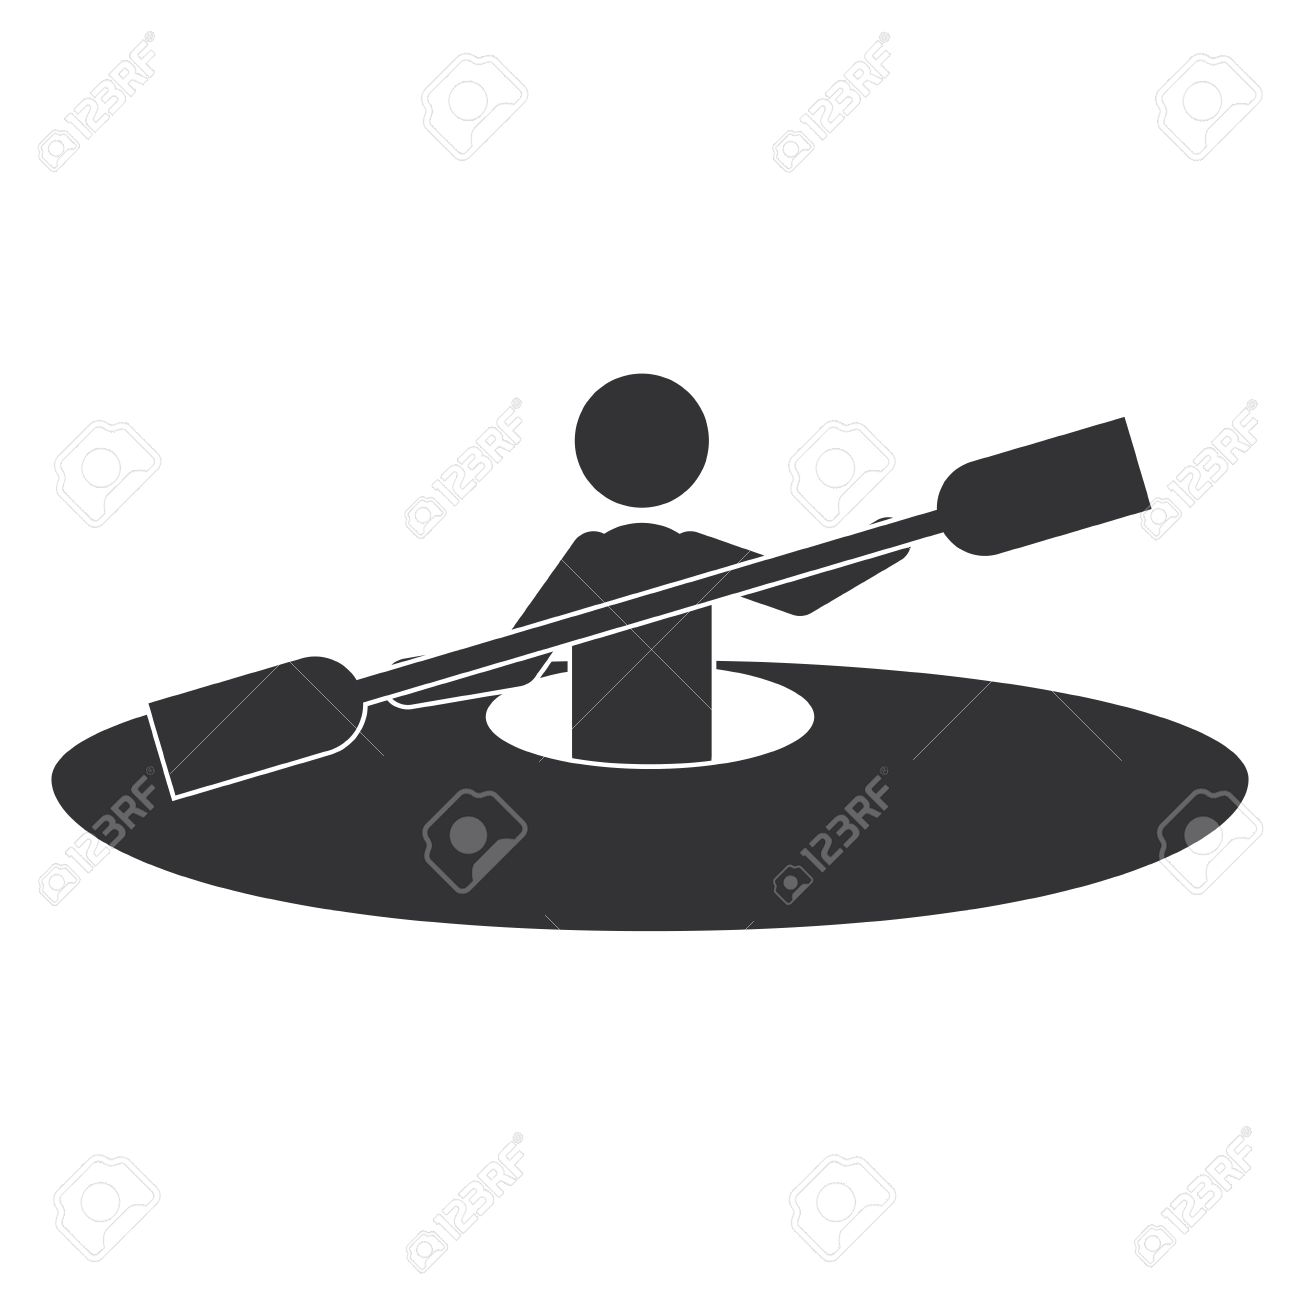 Monochrome Silhouette With Man And Kayak Rowing Vector Illustration Stock